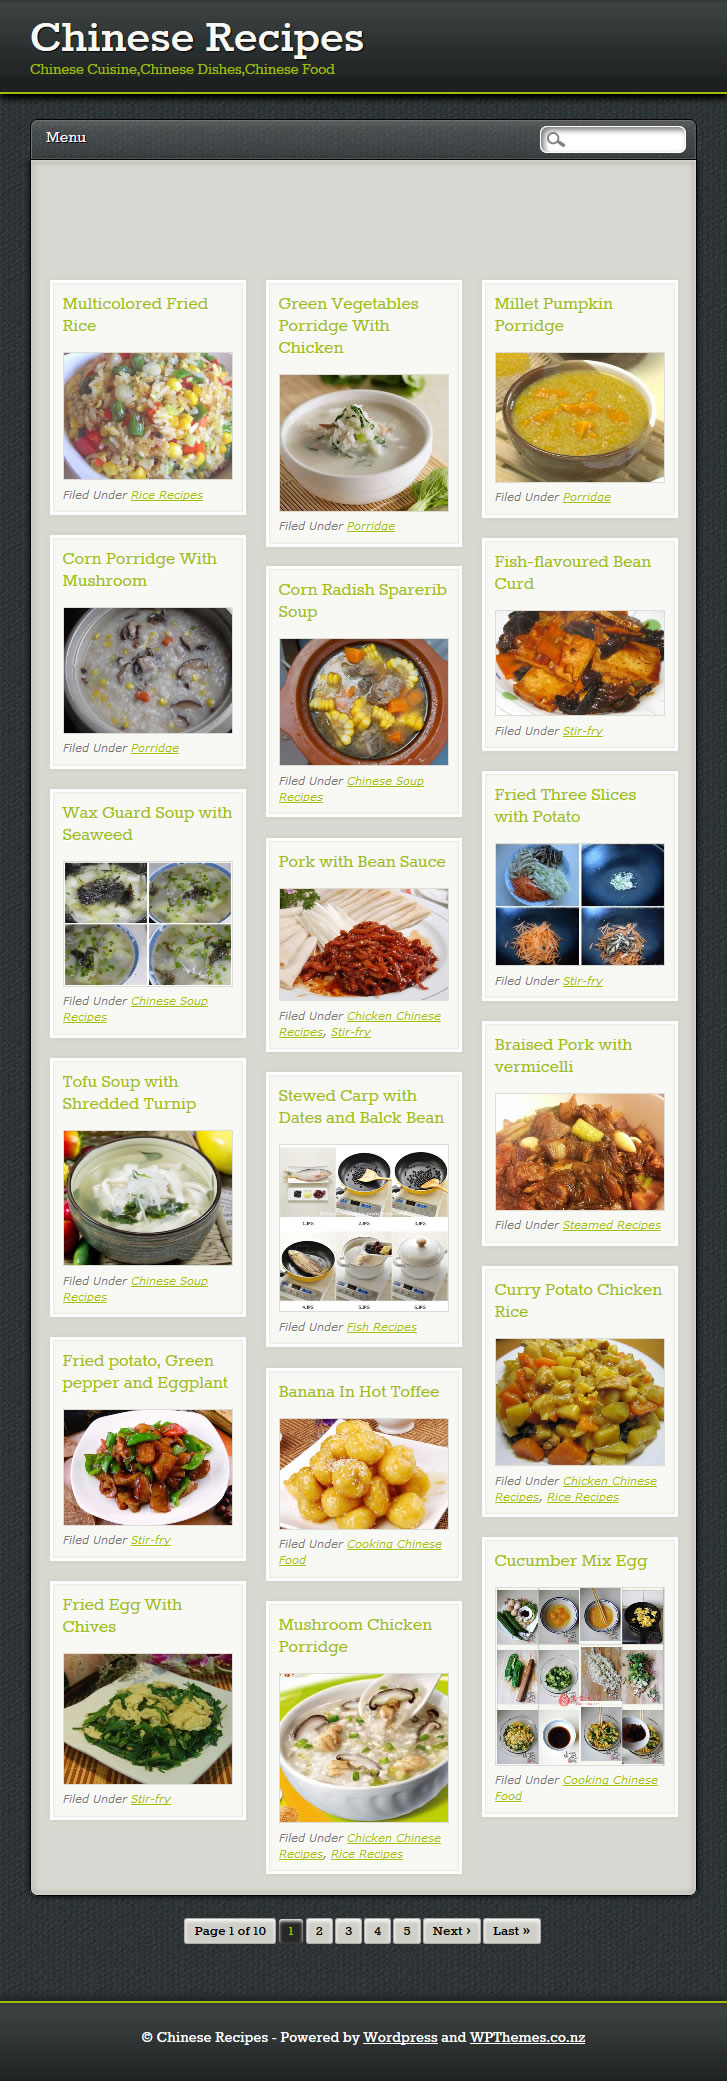 Chinese Recipes